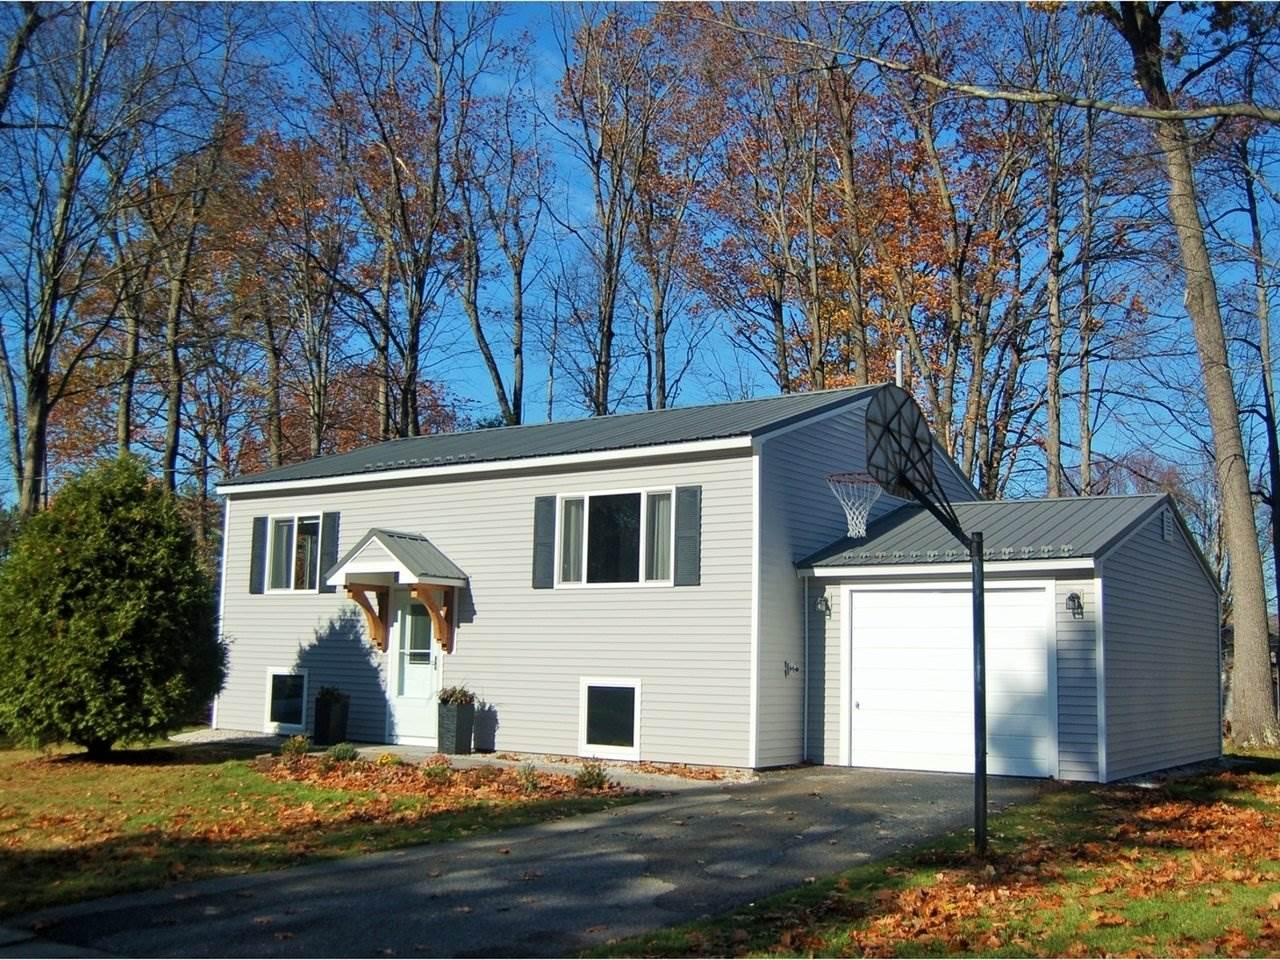 Sold property in Essex Junction